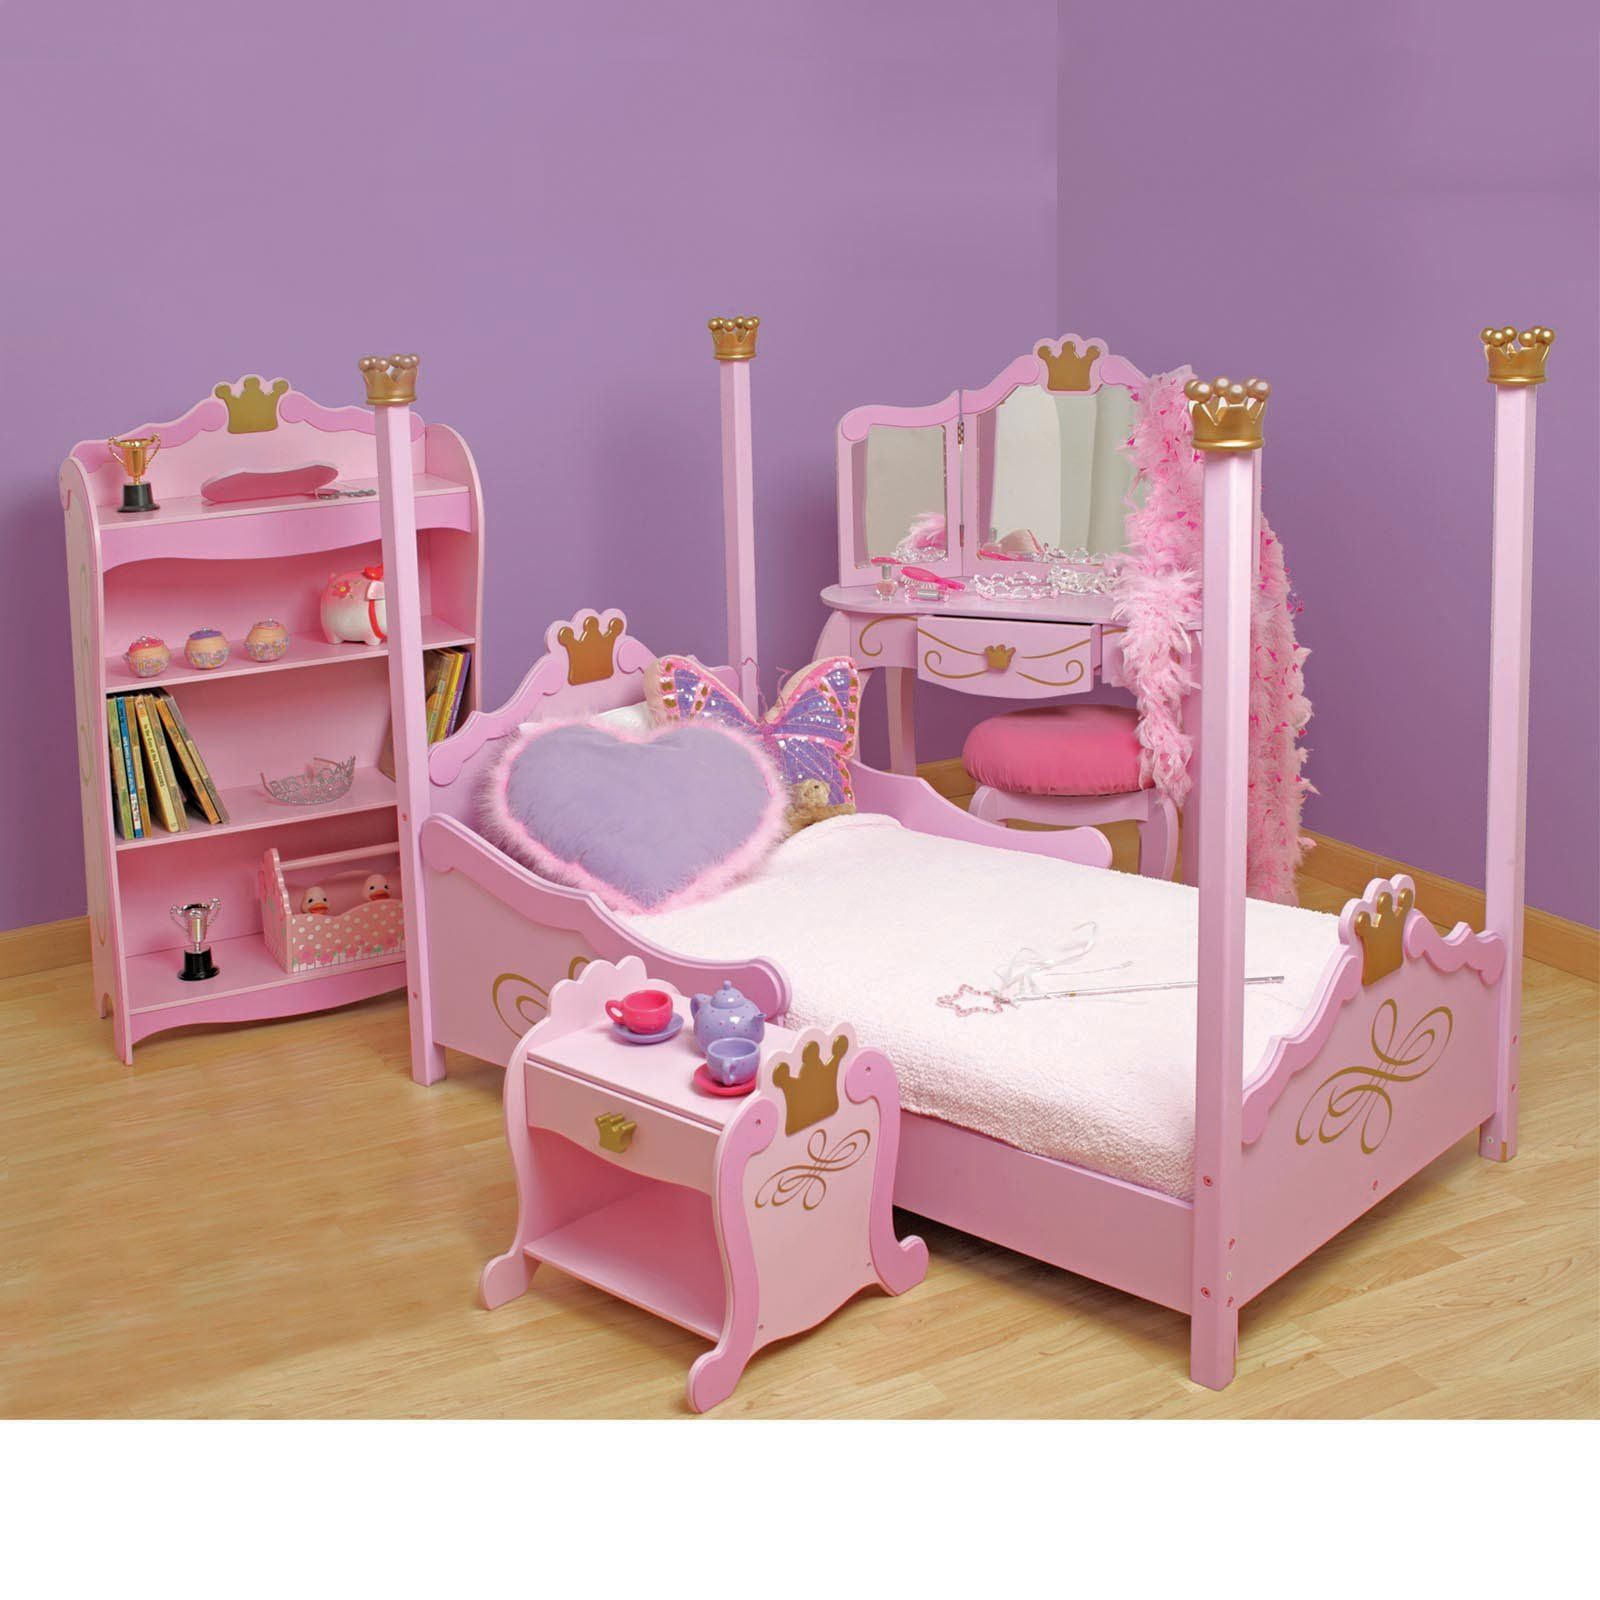 Cute toddler beds for girls for Princess style bedroom furniture